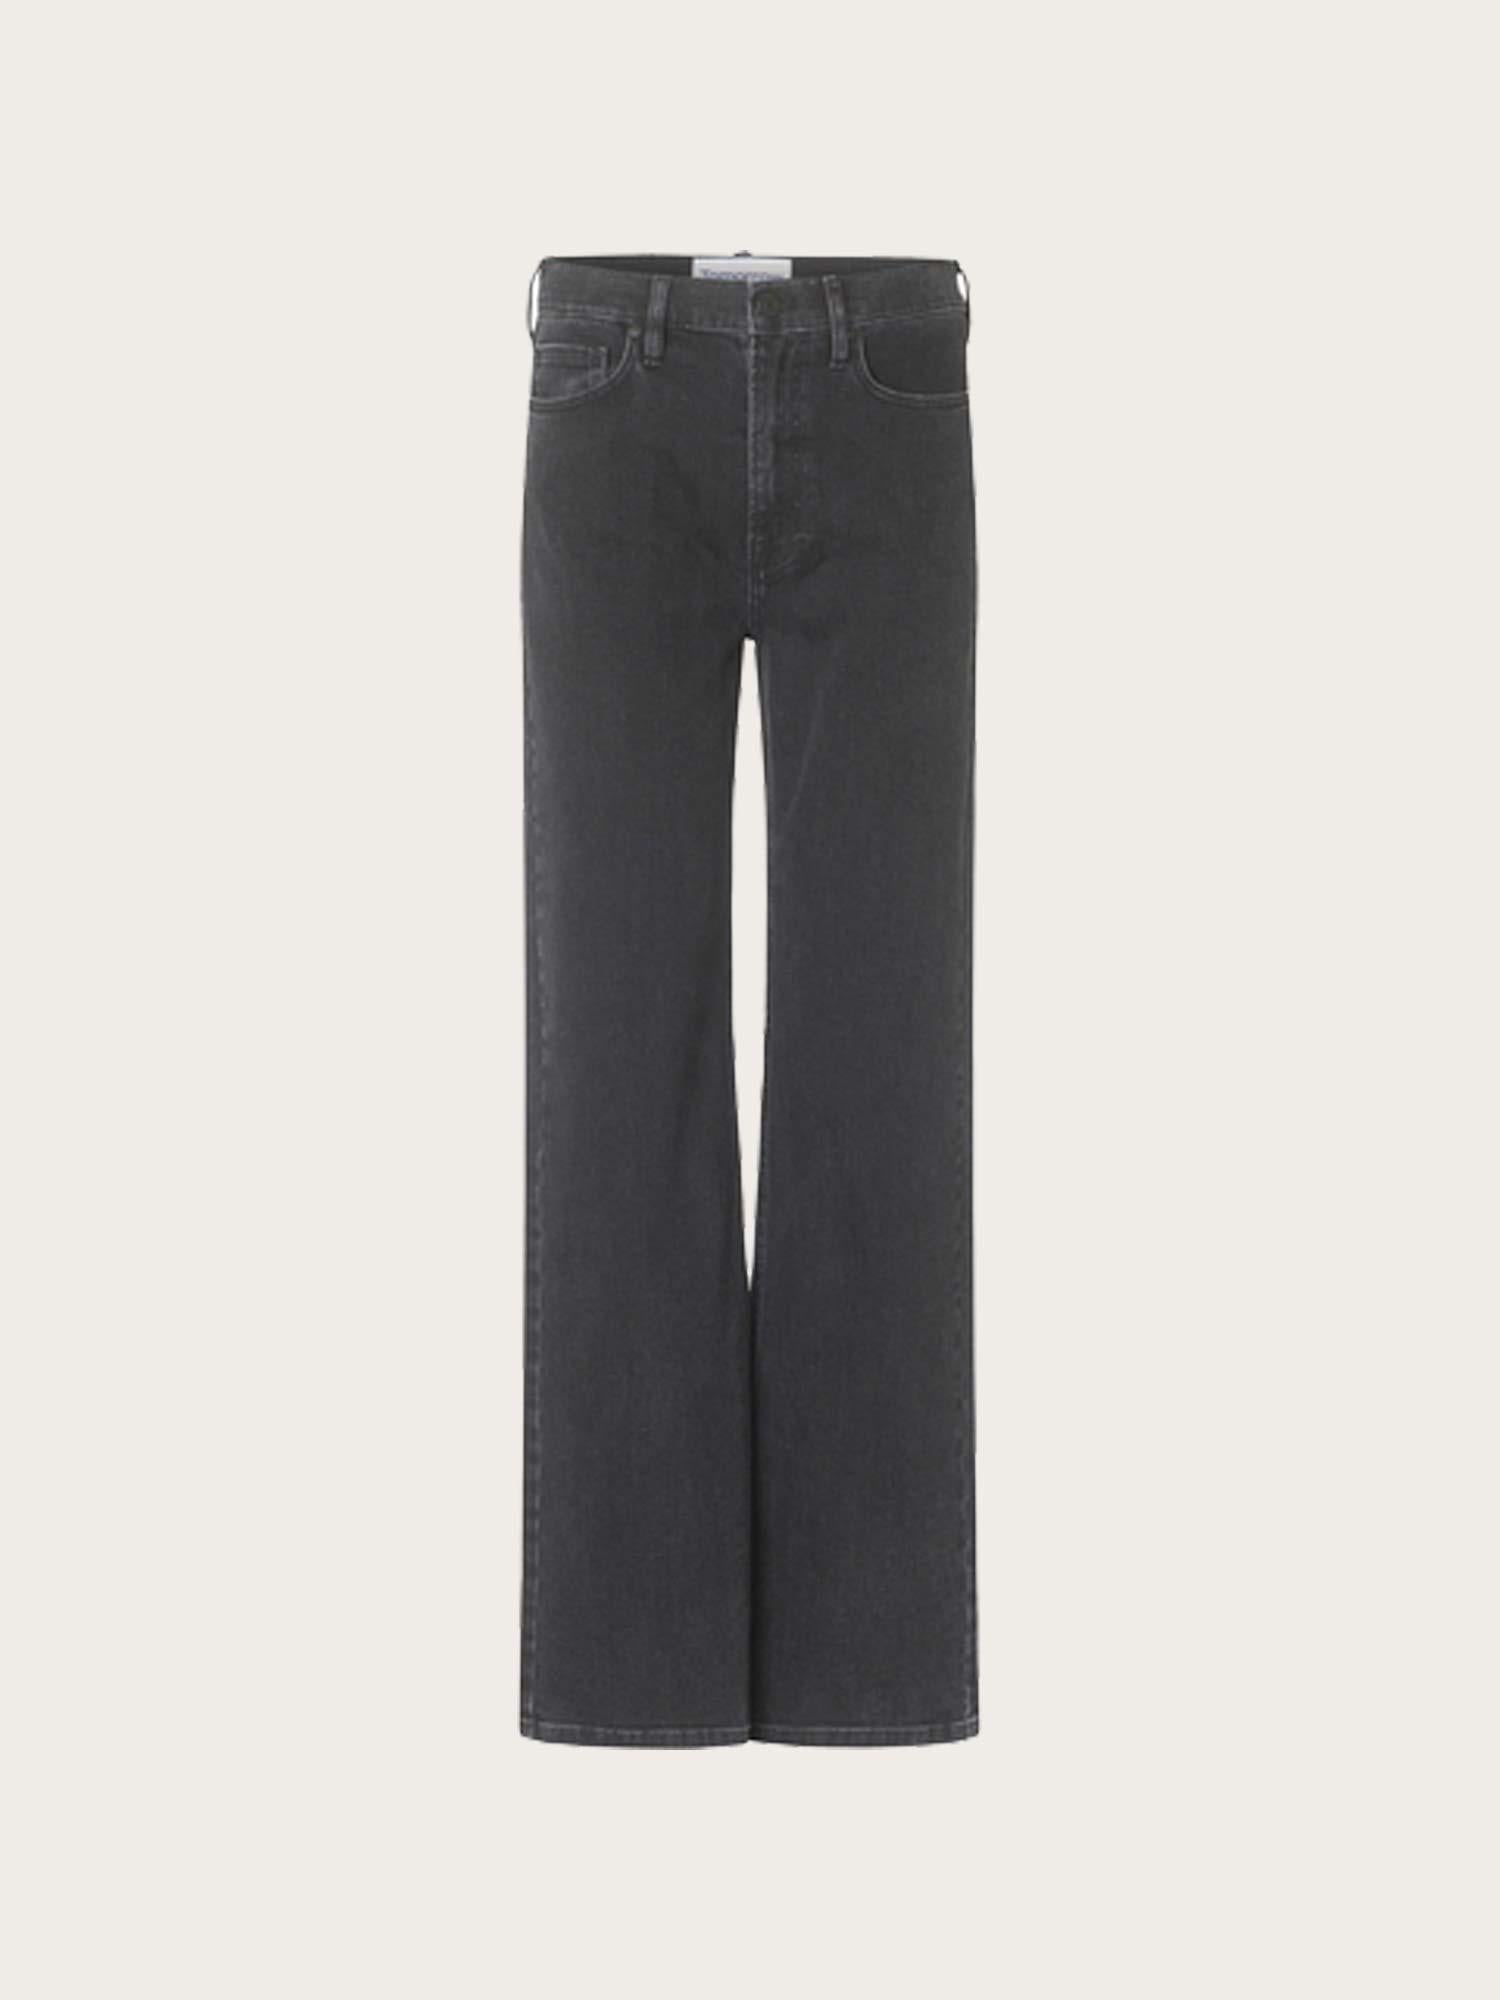 Brown Straight Jeans Original Black